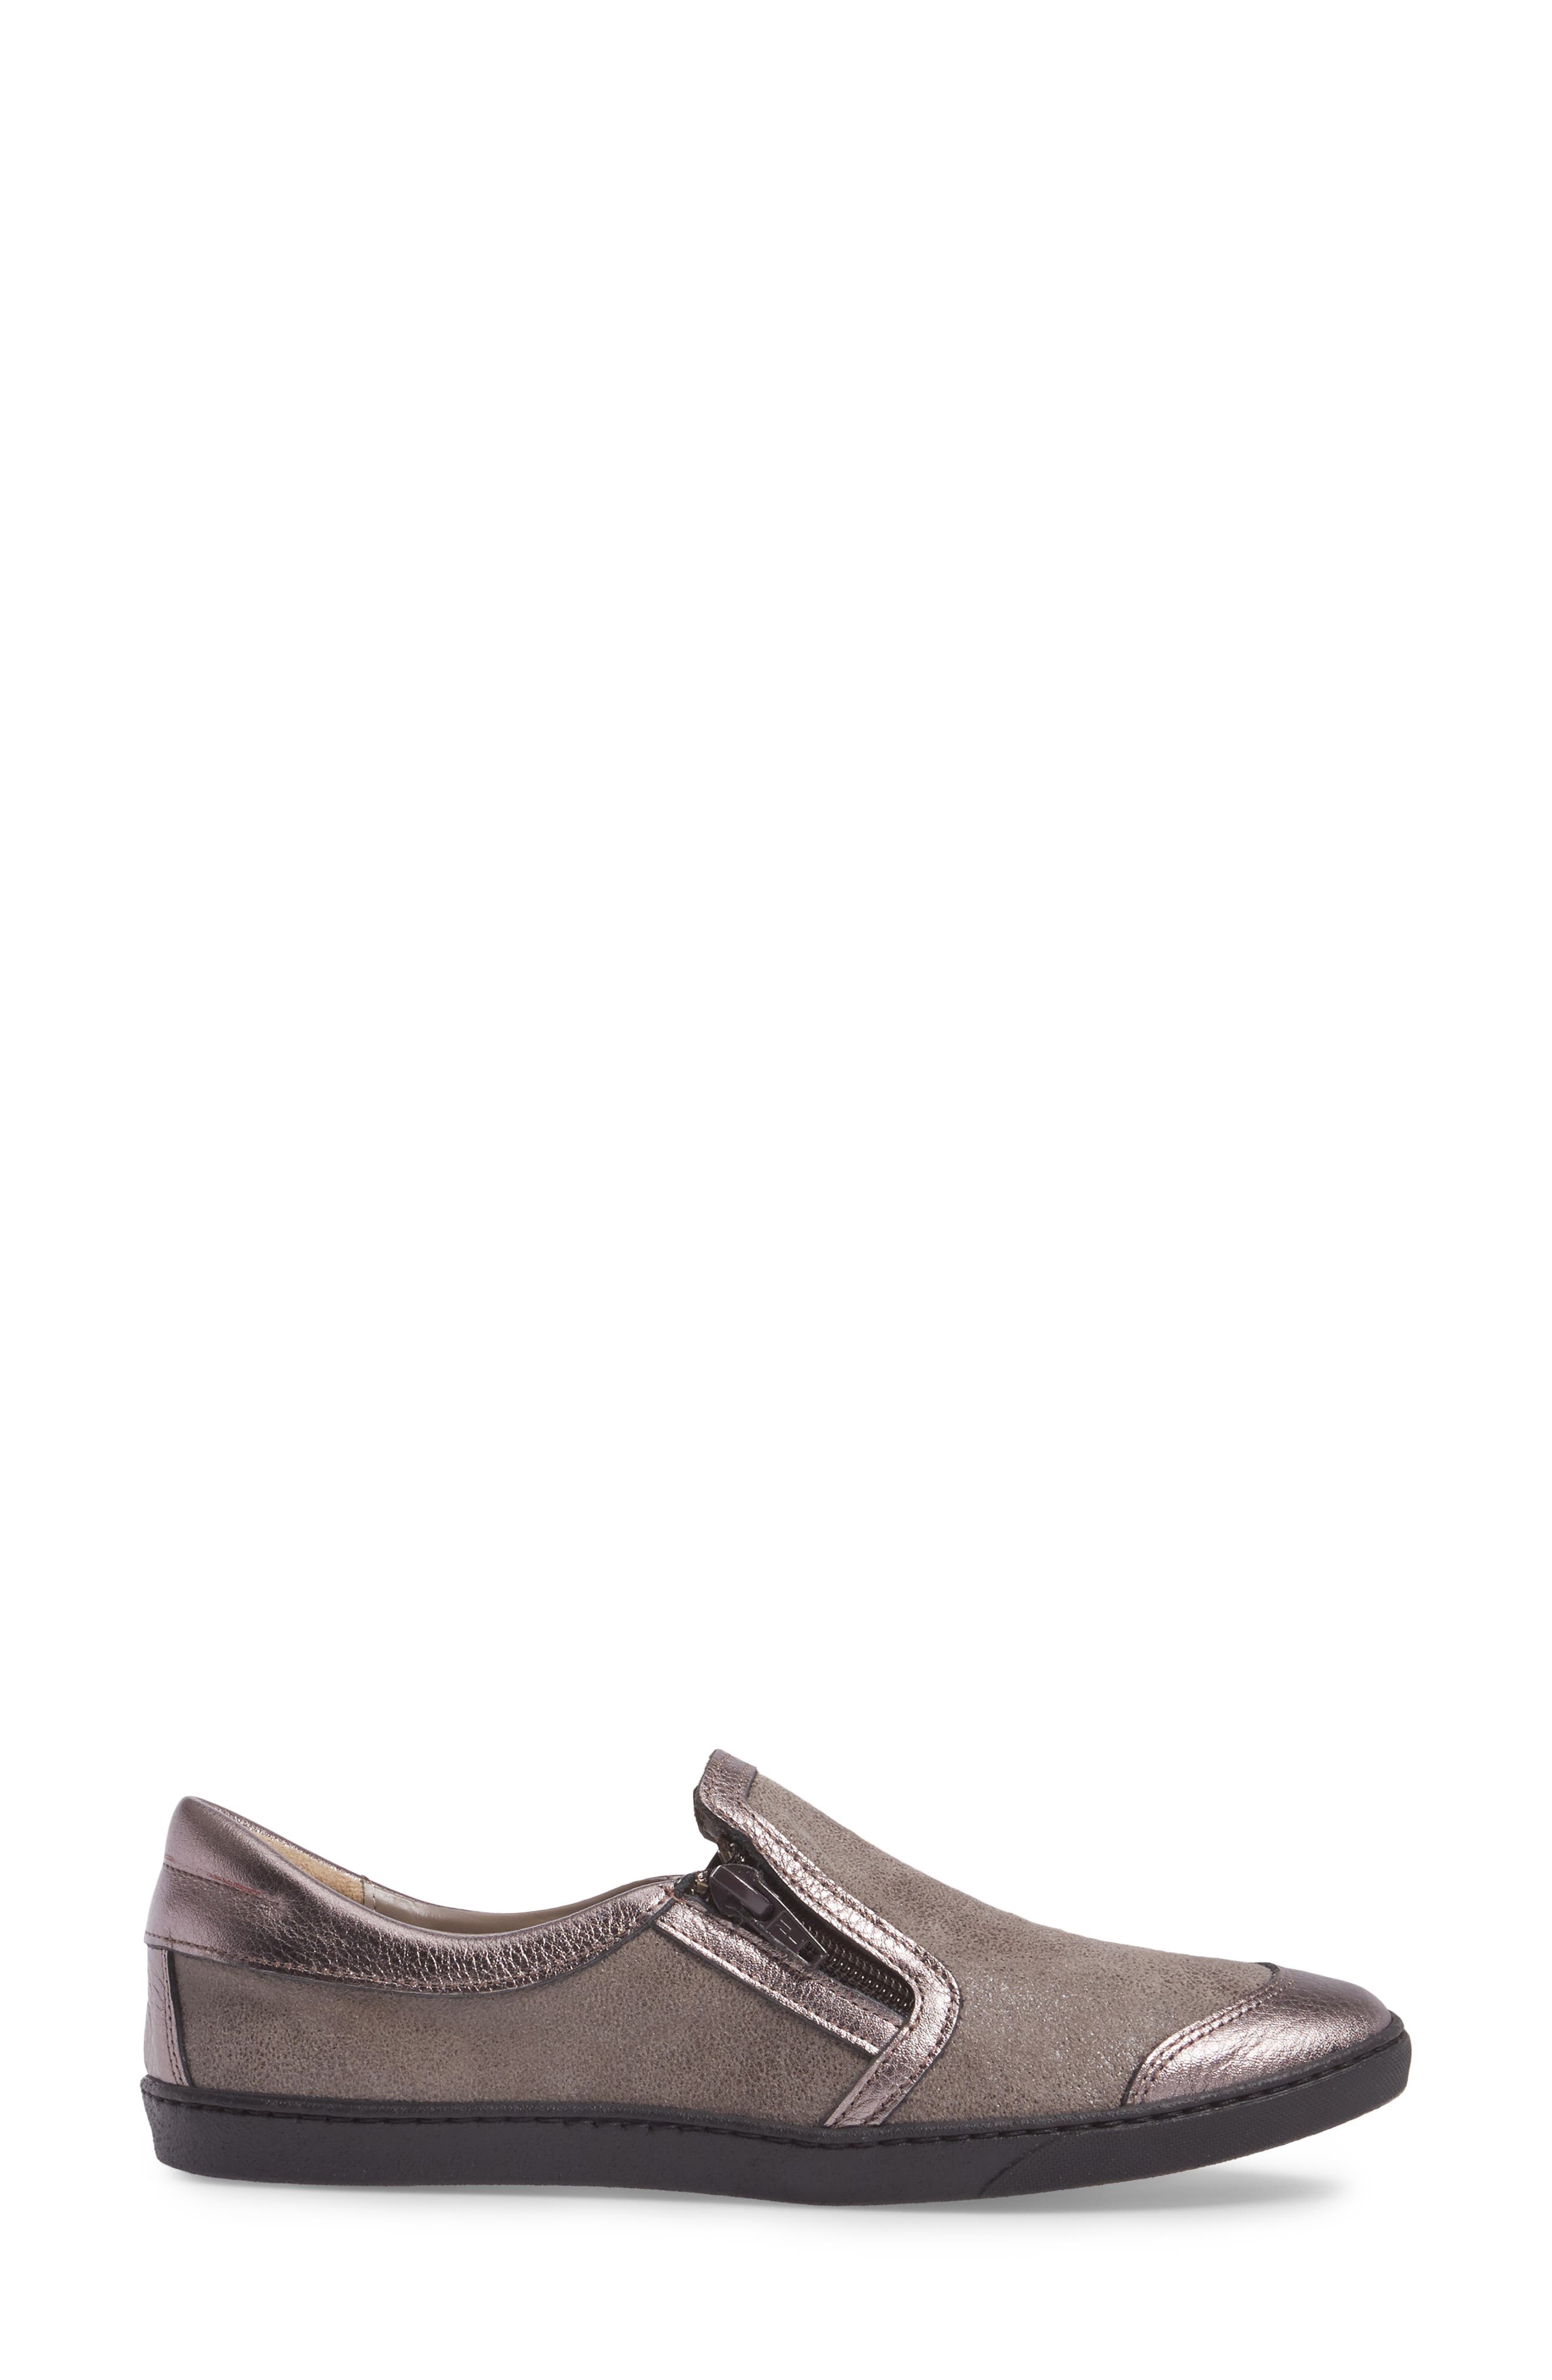 Fiorin Slip-On Sneaker,                             Alternate thumbnail 3, color,                             Taupe Fabric